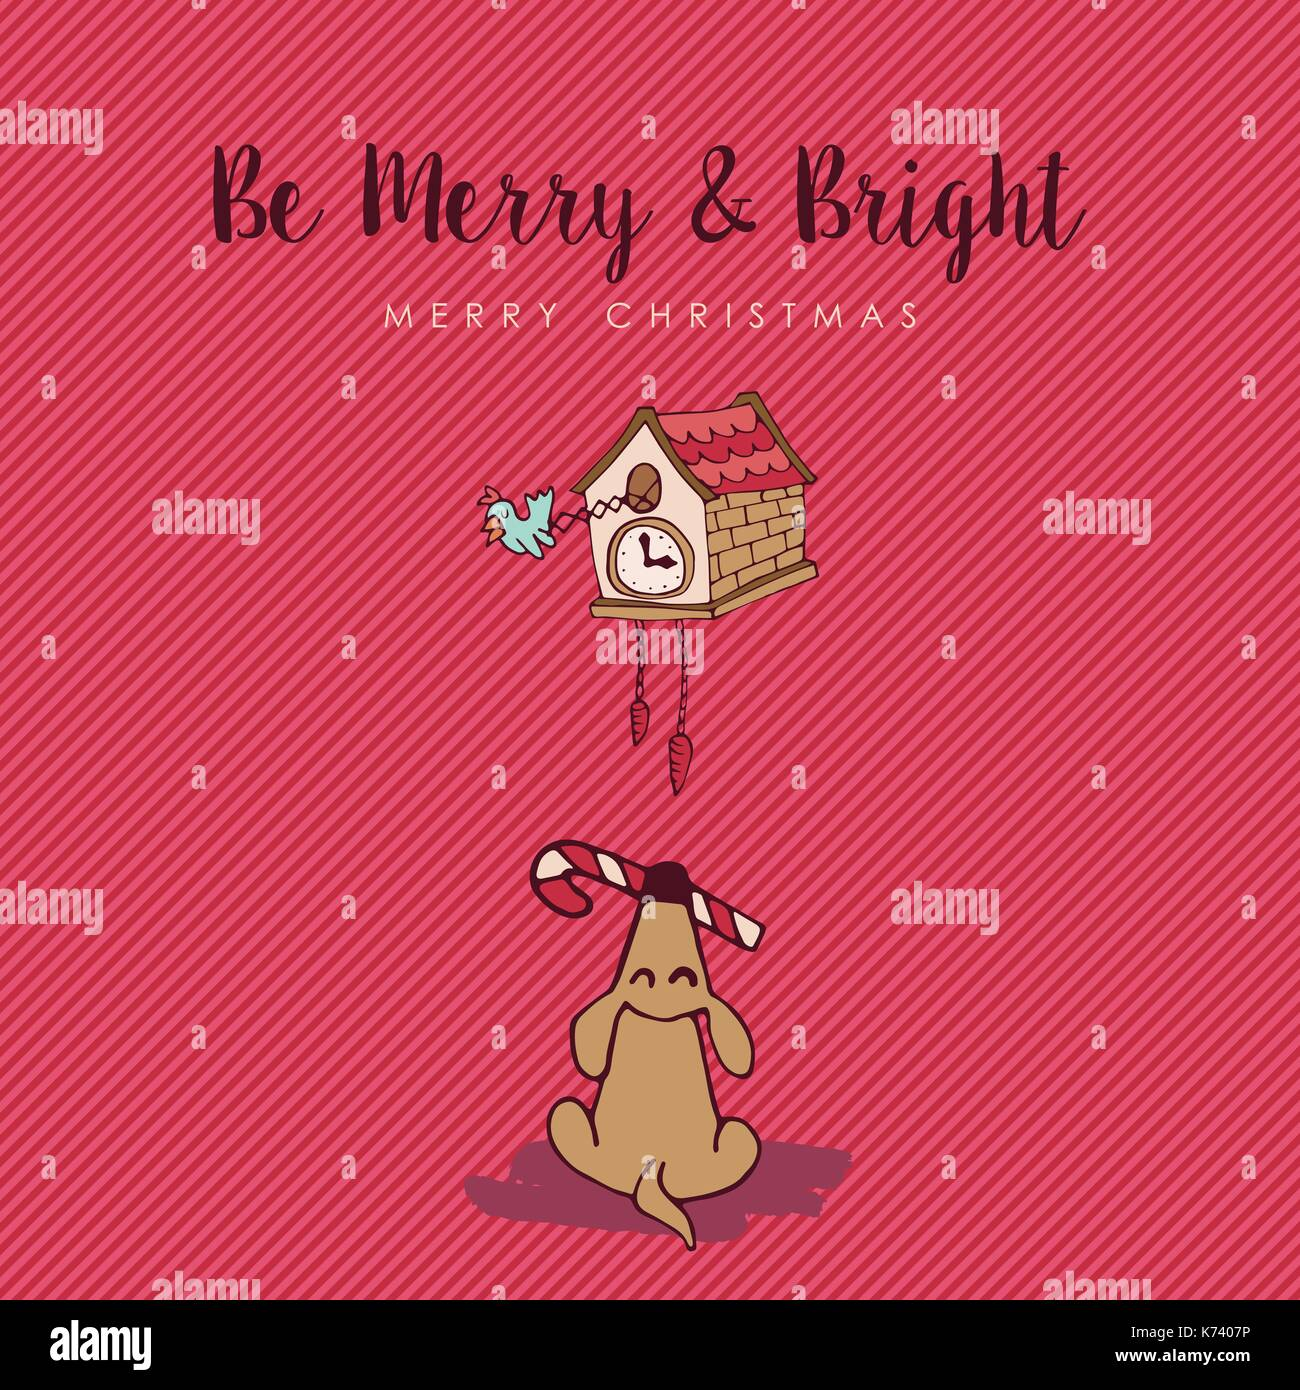 Merry christmas hand drawn greeting card illustration cute puppy merry christmas hand drawn greeting card illustration cute puppy with cuckoo bird clock and holiday kristyandbryce Gallery